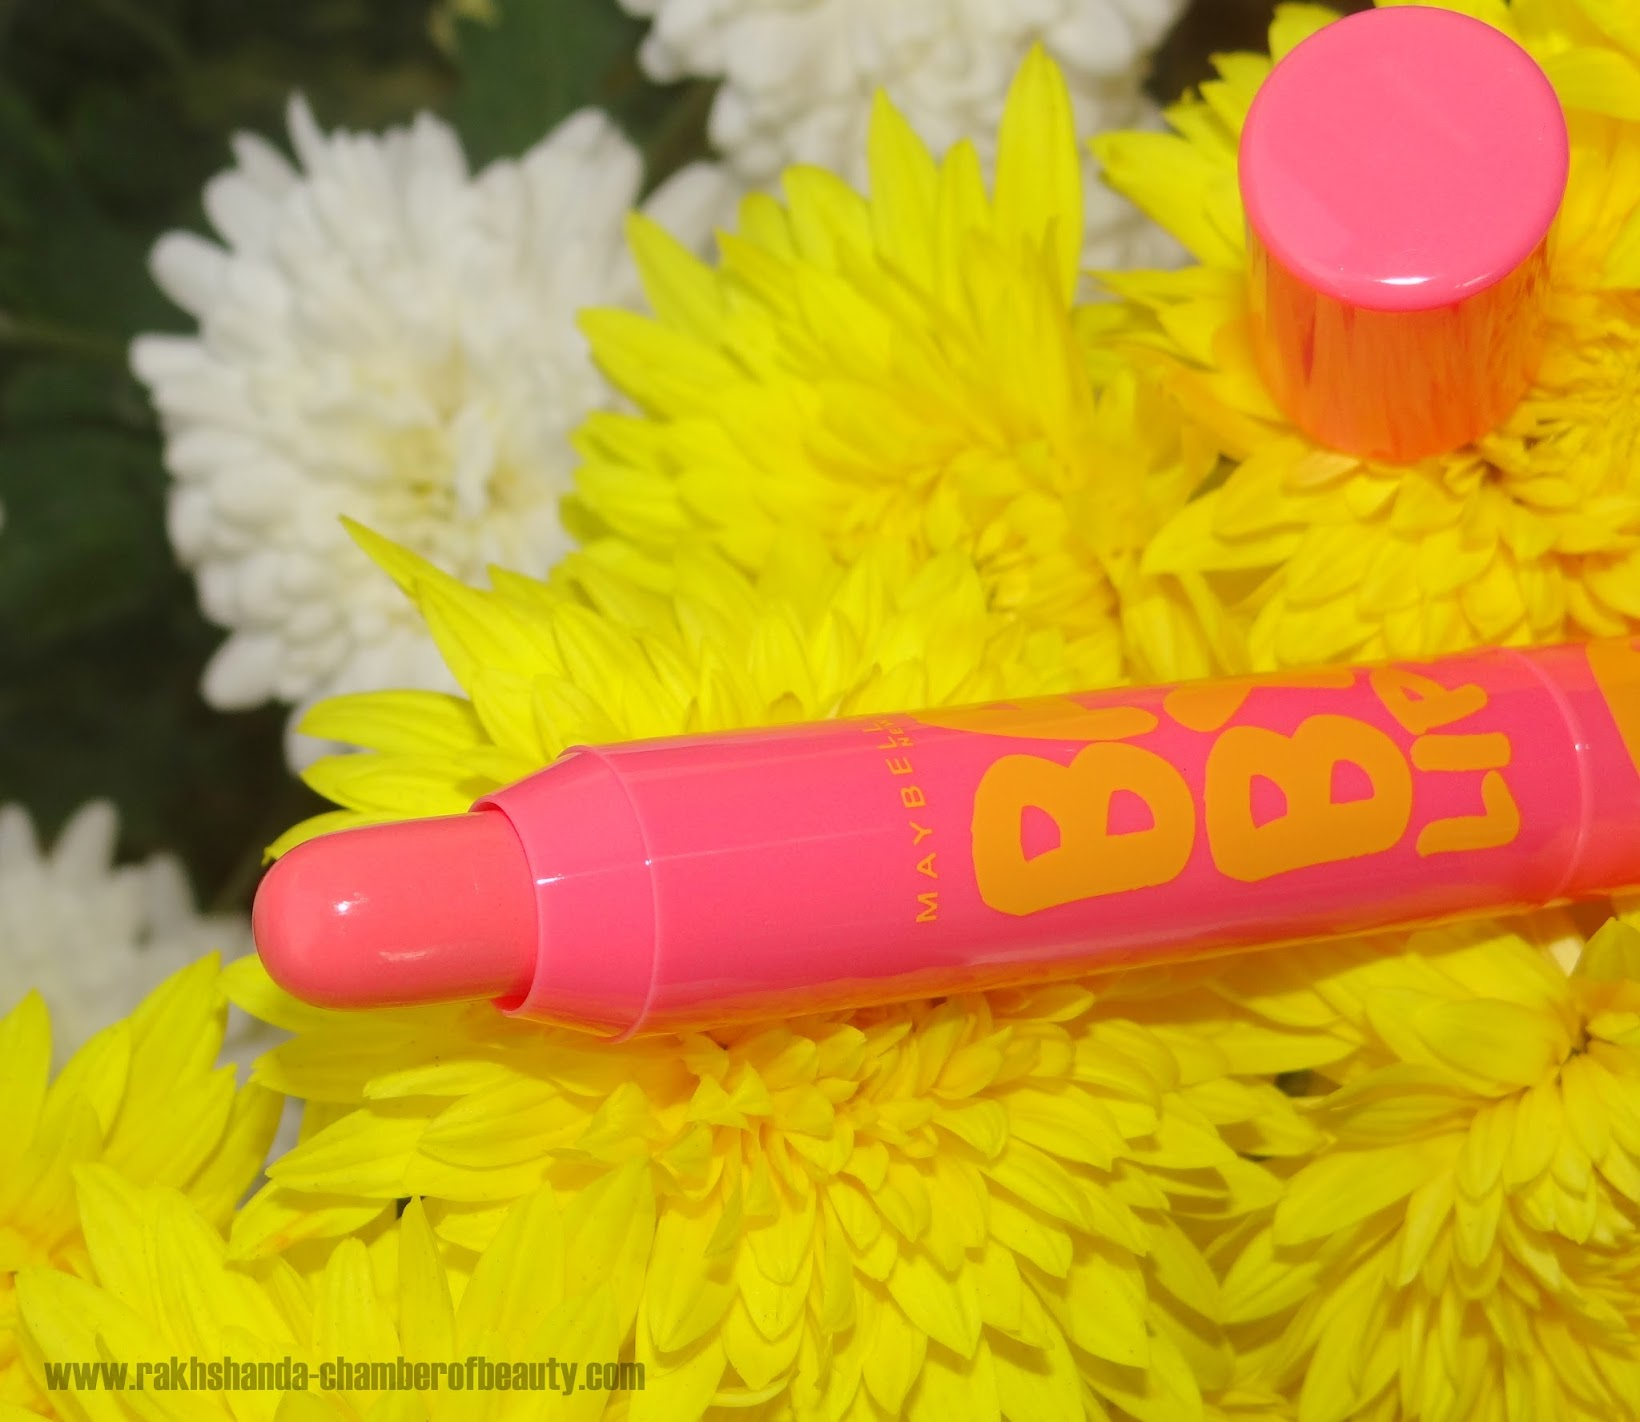 Maybelline Baby Lips Candy Wow Peach Review, Swatches, baby lips, best tinted lip balm in India, Maybelline Baby Lips Candy Wow price in India, Indian beauty blogger, lip balm, Maybelline, Maybelline Baby Lips Candy Wow, peach shade, review, review and swatches, Maybelline New York, Chamber of beauty